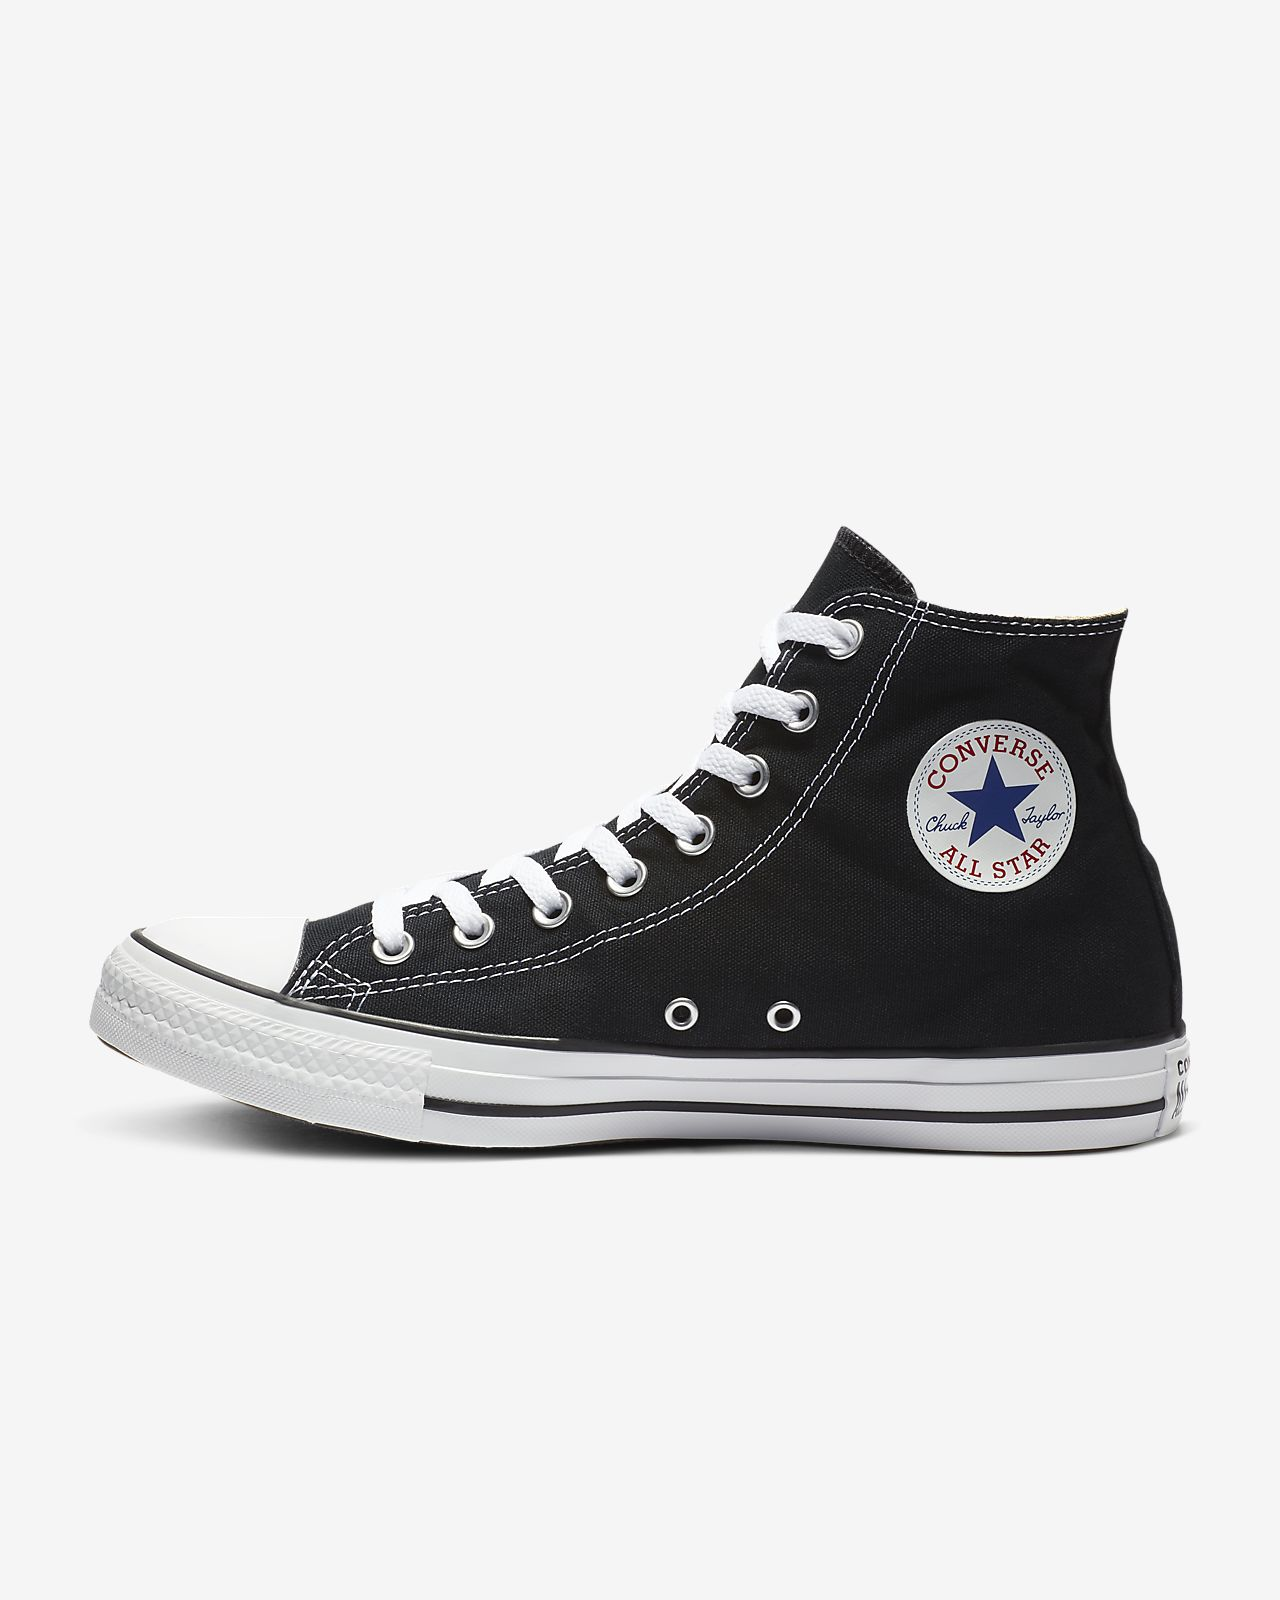 3b180d0228a7 Converse Chuck Taylor All Star High Top Unisex Shoe. Nike.com